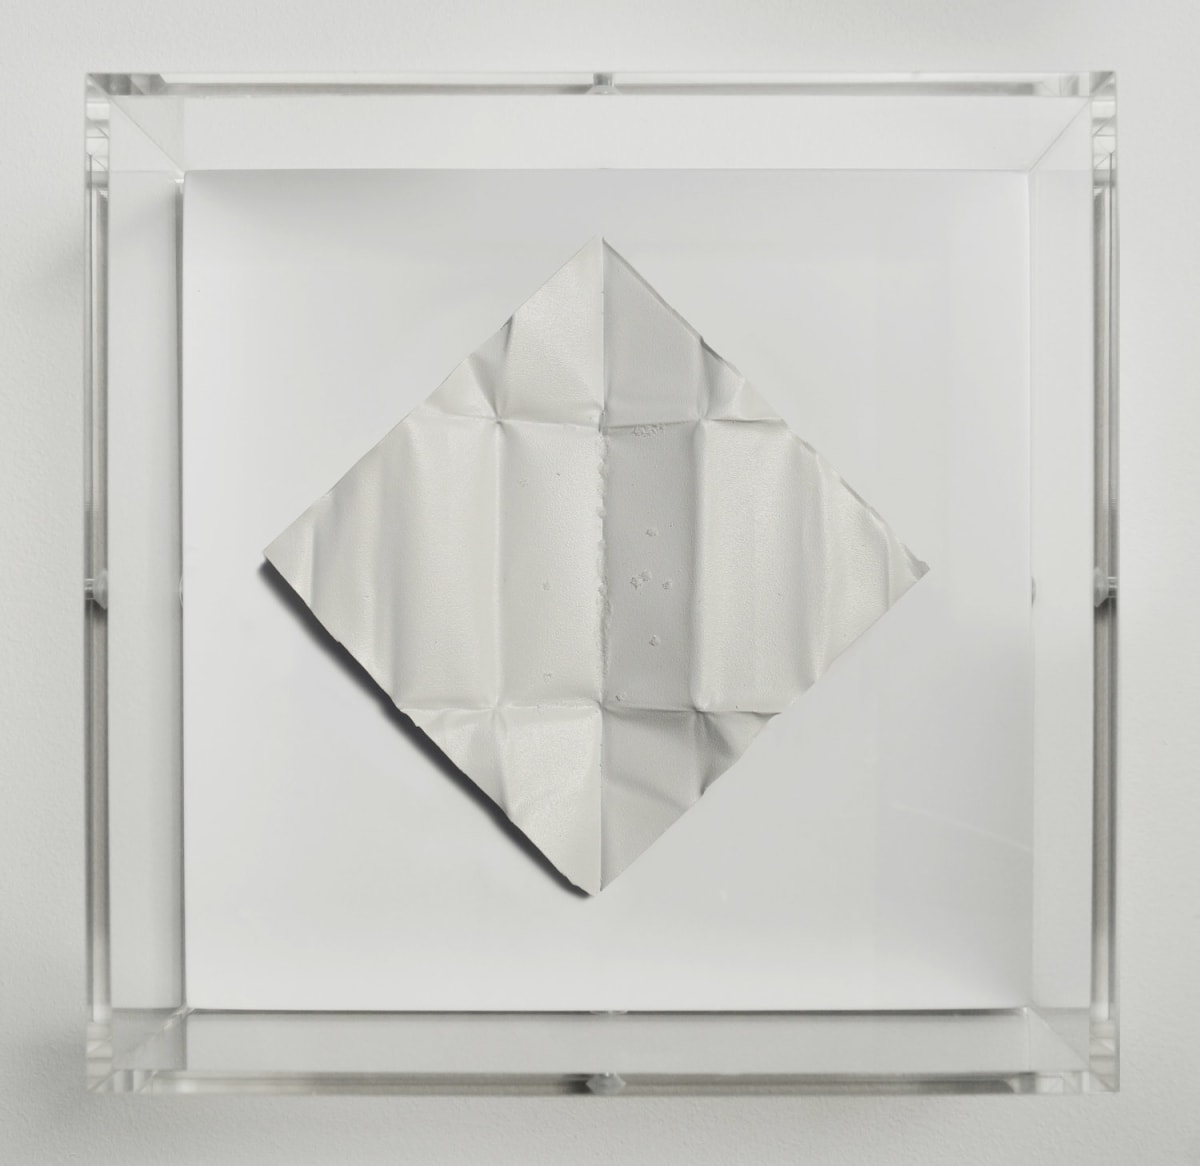 Mat Collishaw The Release - Signal White, 2018 Diamond dust, folded aluminium, wood, acrylic, paint FRAMED 18.5 x 18.5 x 6.5 cm Edition of 10 Signed and numbered